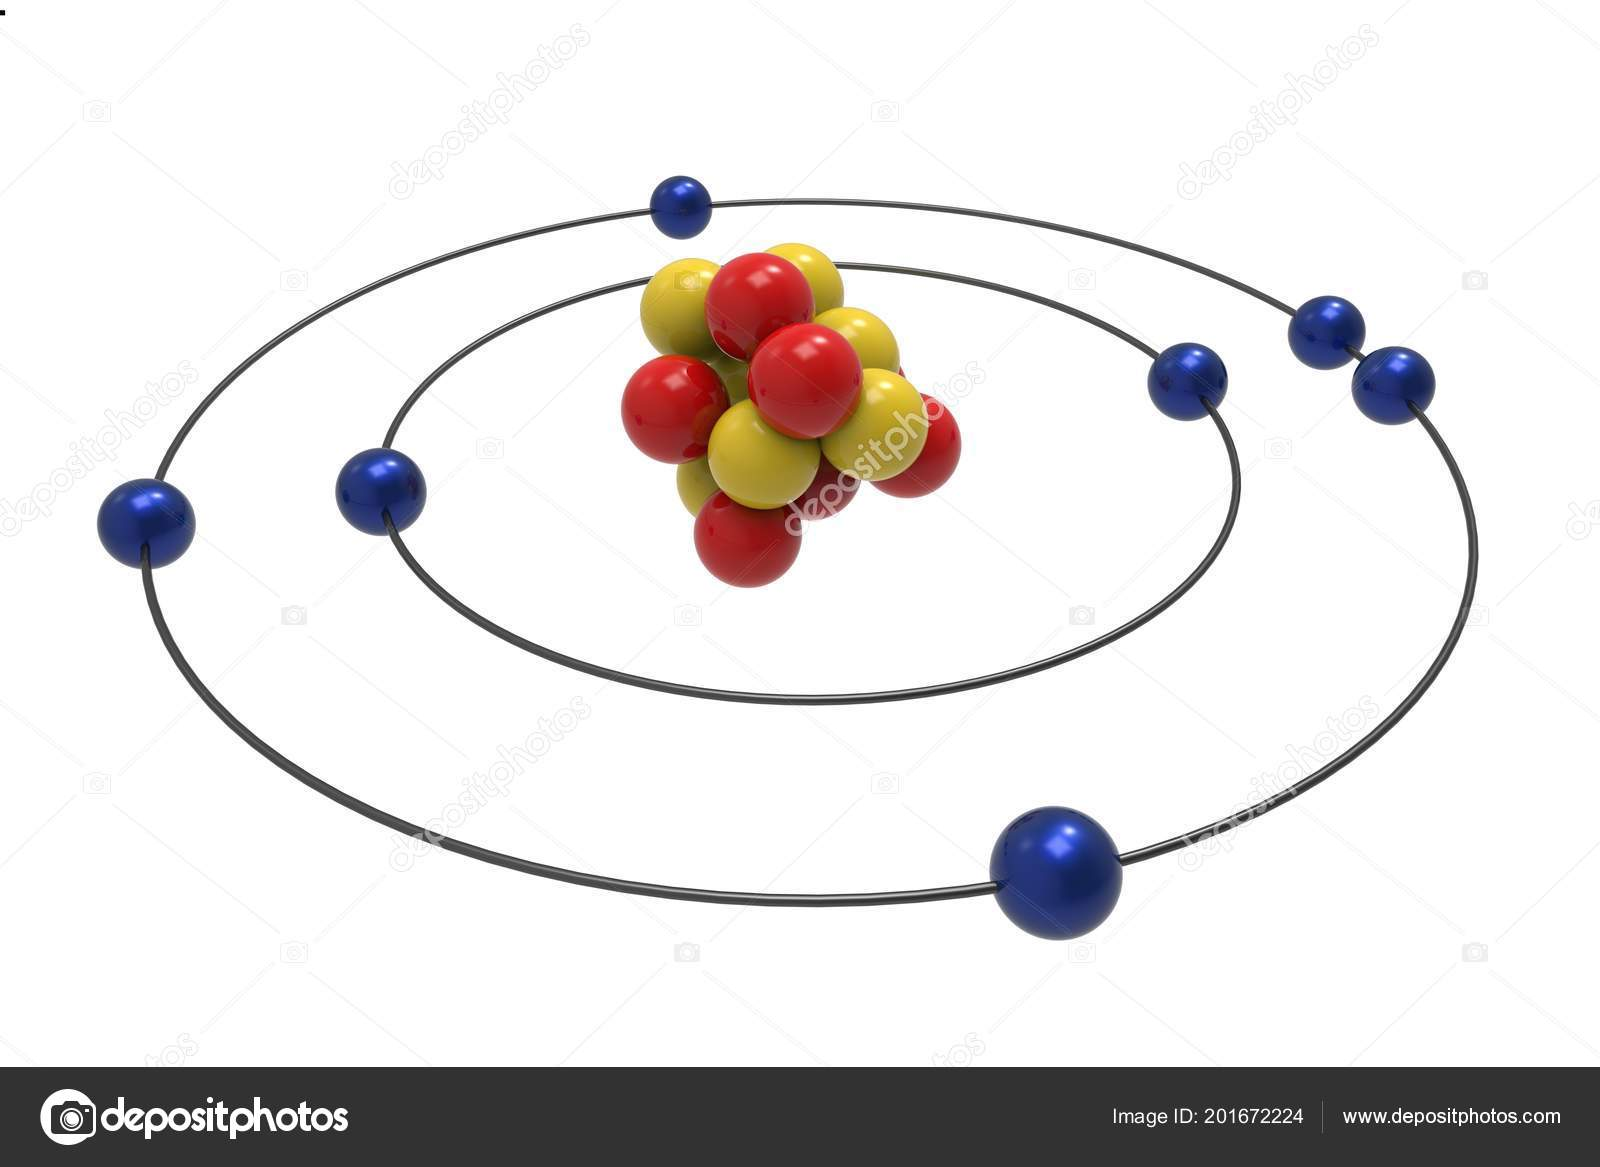 Bohr model nitrogen atom proton neutron electron science chemical bohr model nitrogen atom proton neutron electron science chemical concept fotografia de stock ccuart